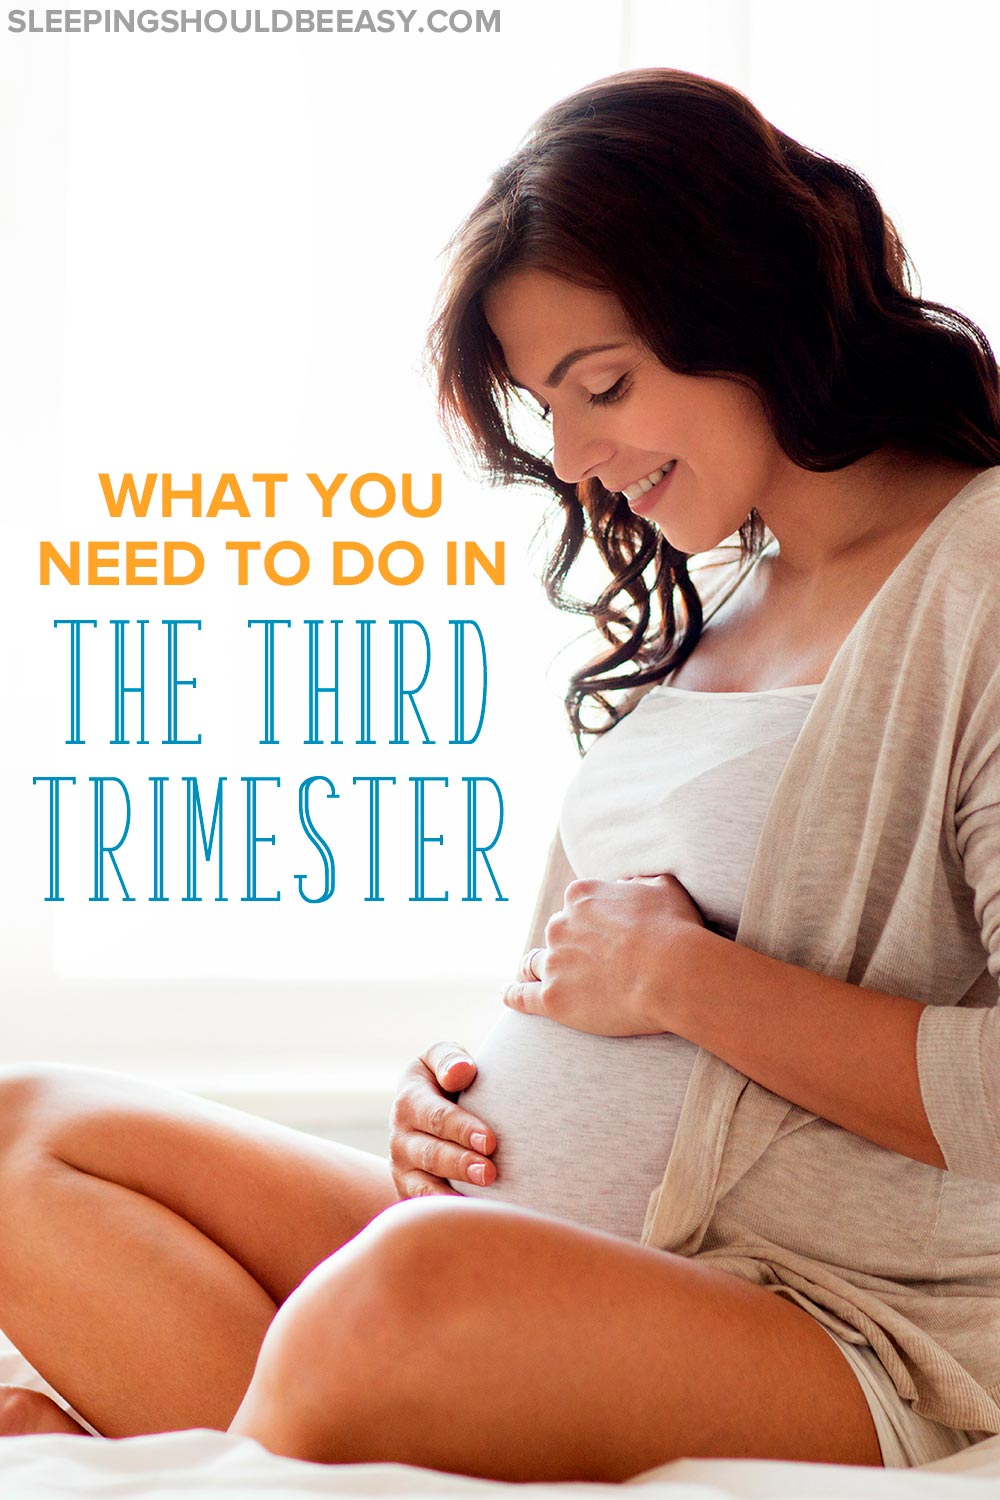 Expecting the baby soon? Make sure you have all your tasks covered. Check out 11 things on your pregnancy to do list that need to get done in the third trimester.